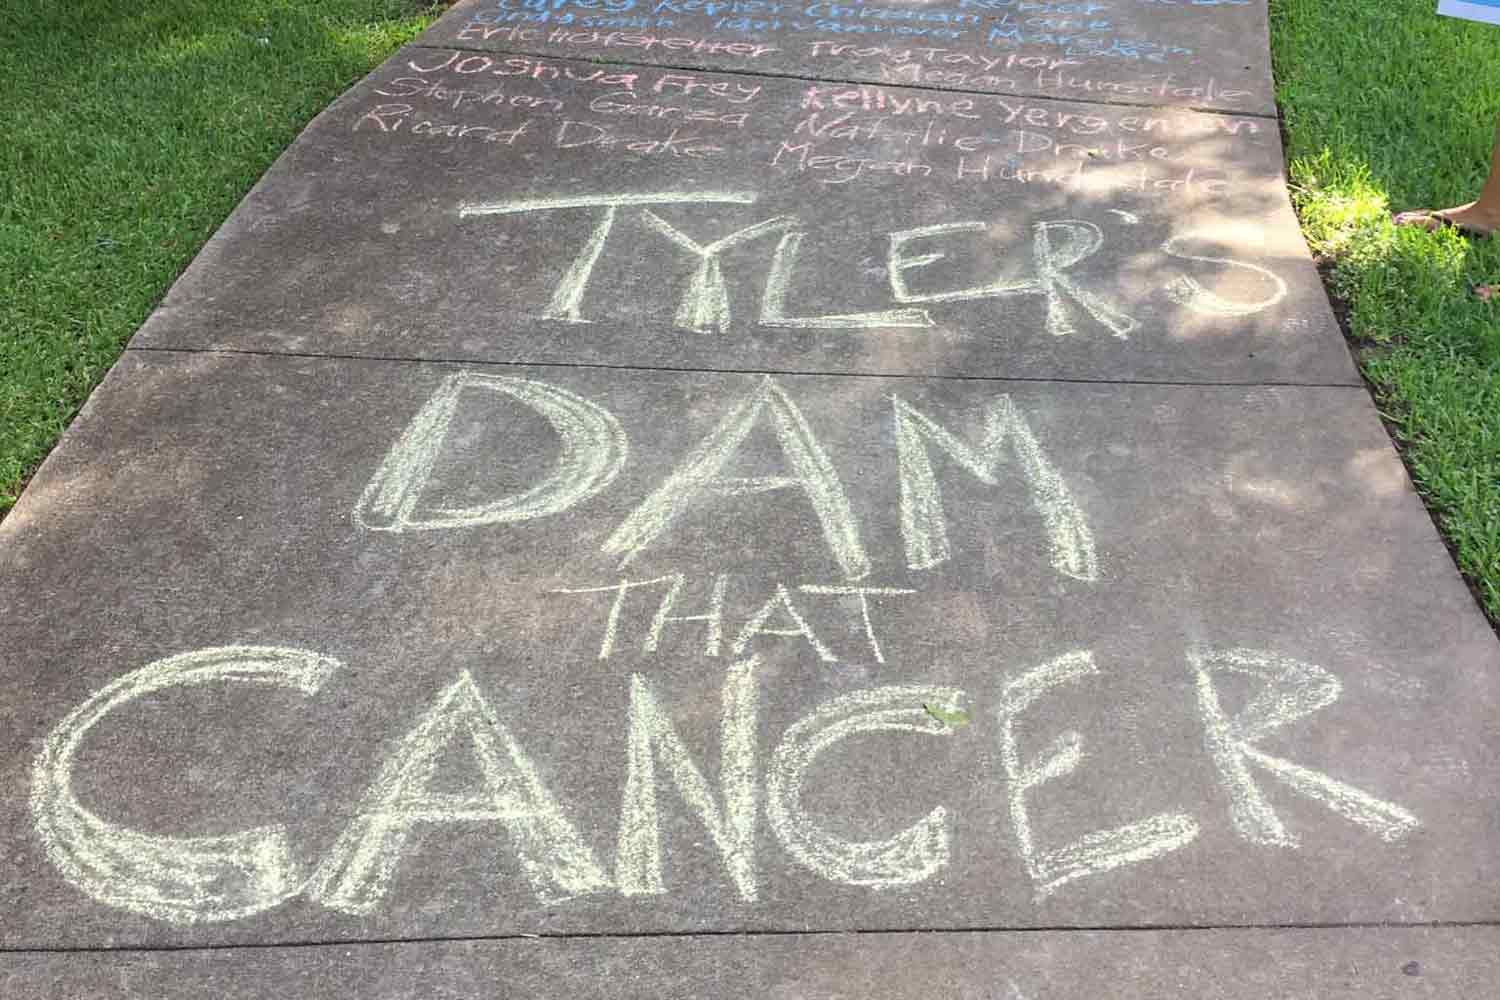 Tyler's Dam that Cancer | The Oldham Group